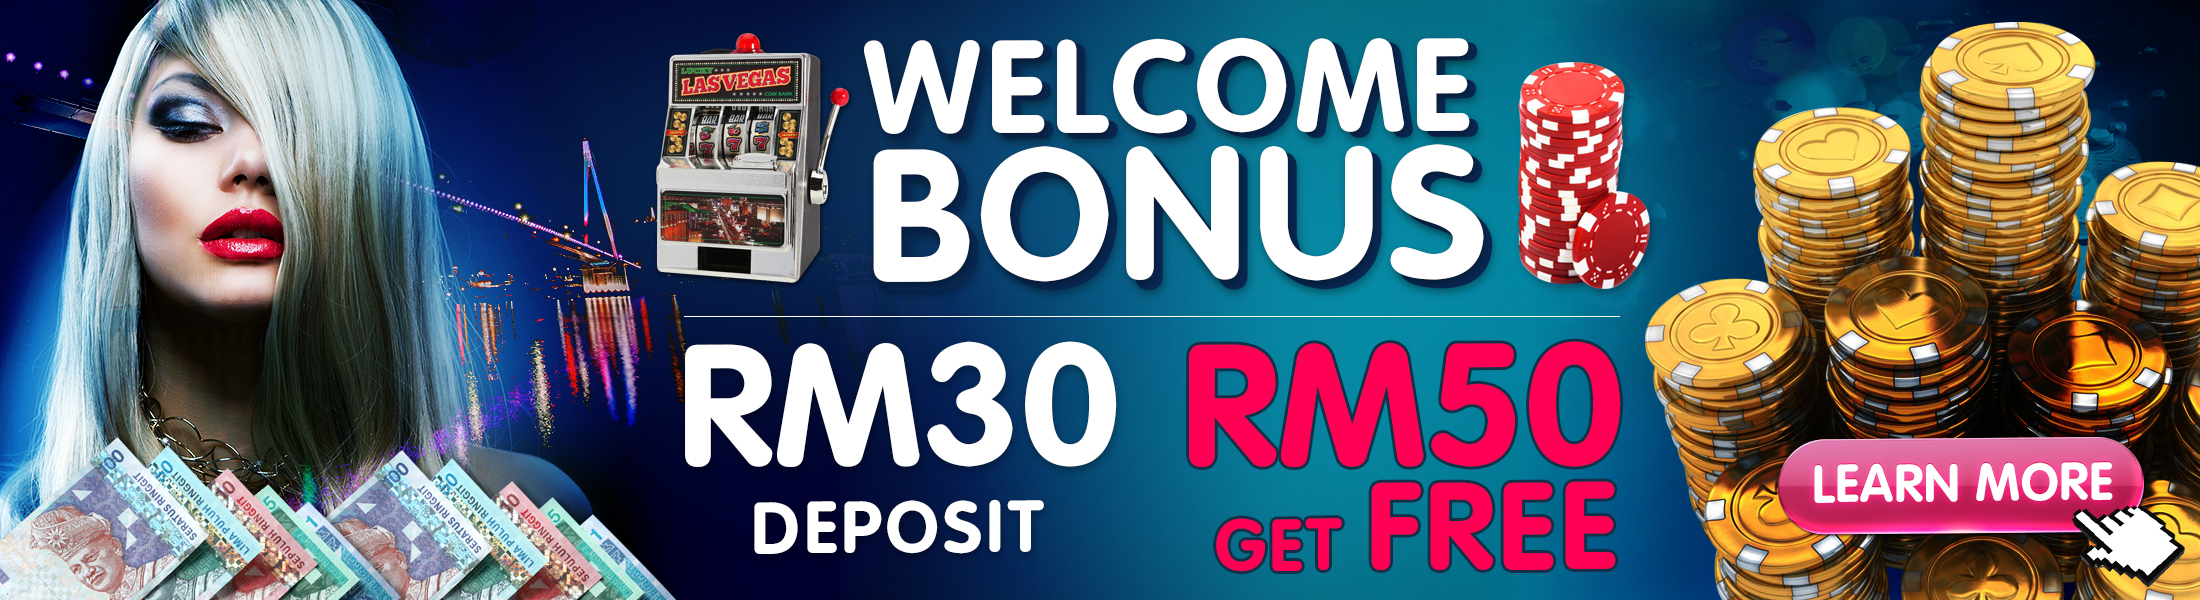 Deposit 30 Free 50 Promotion SKY3888 Top Up Bonus!